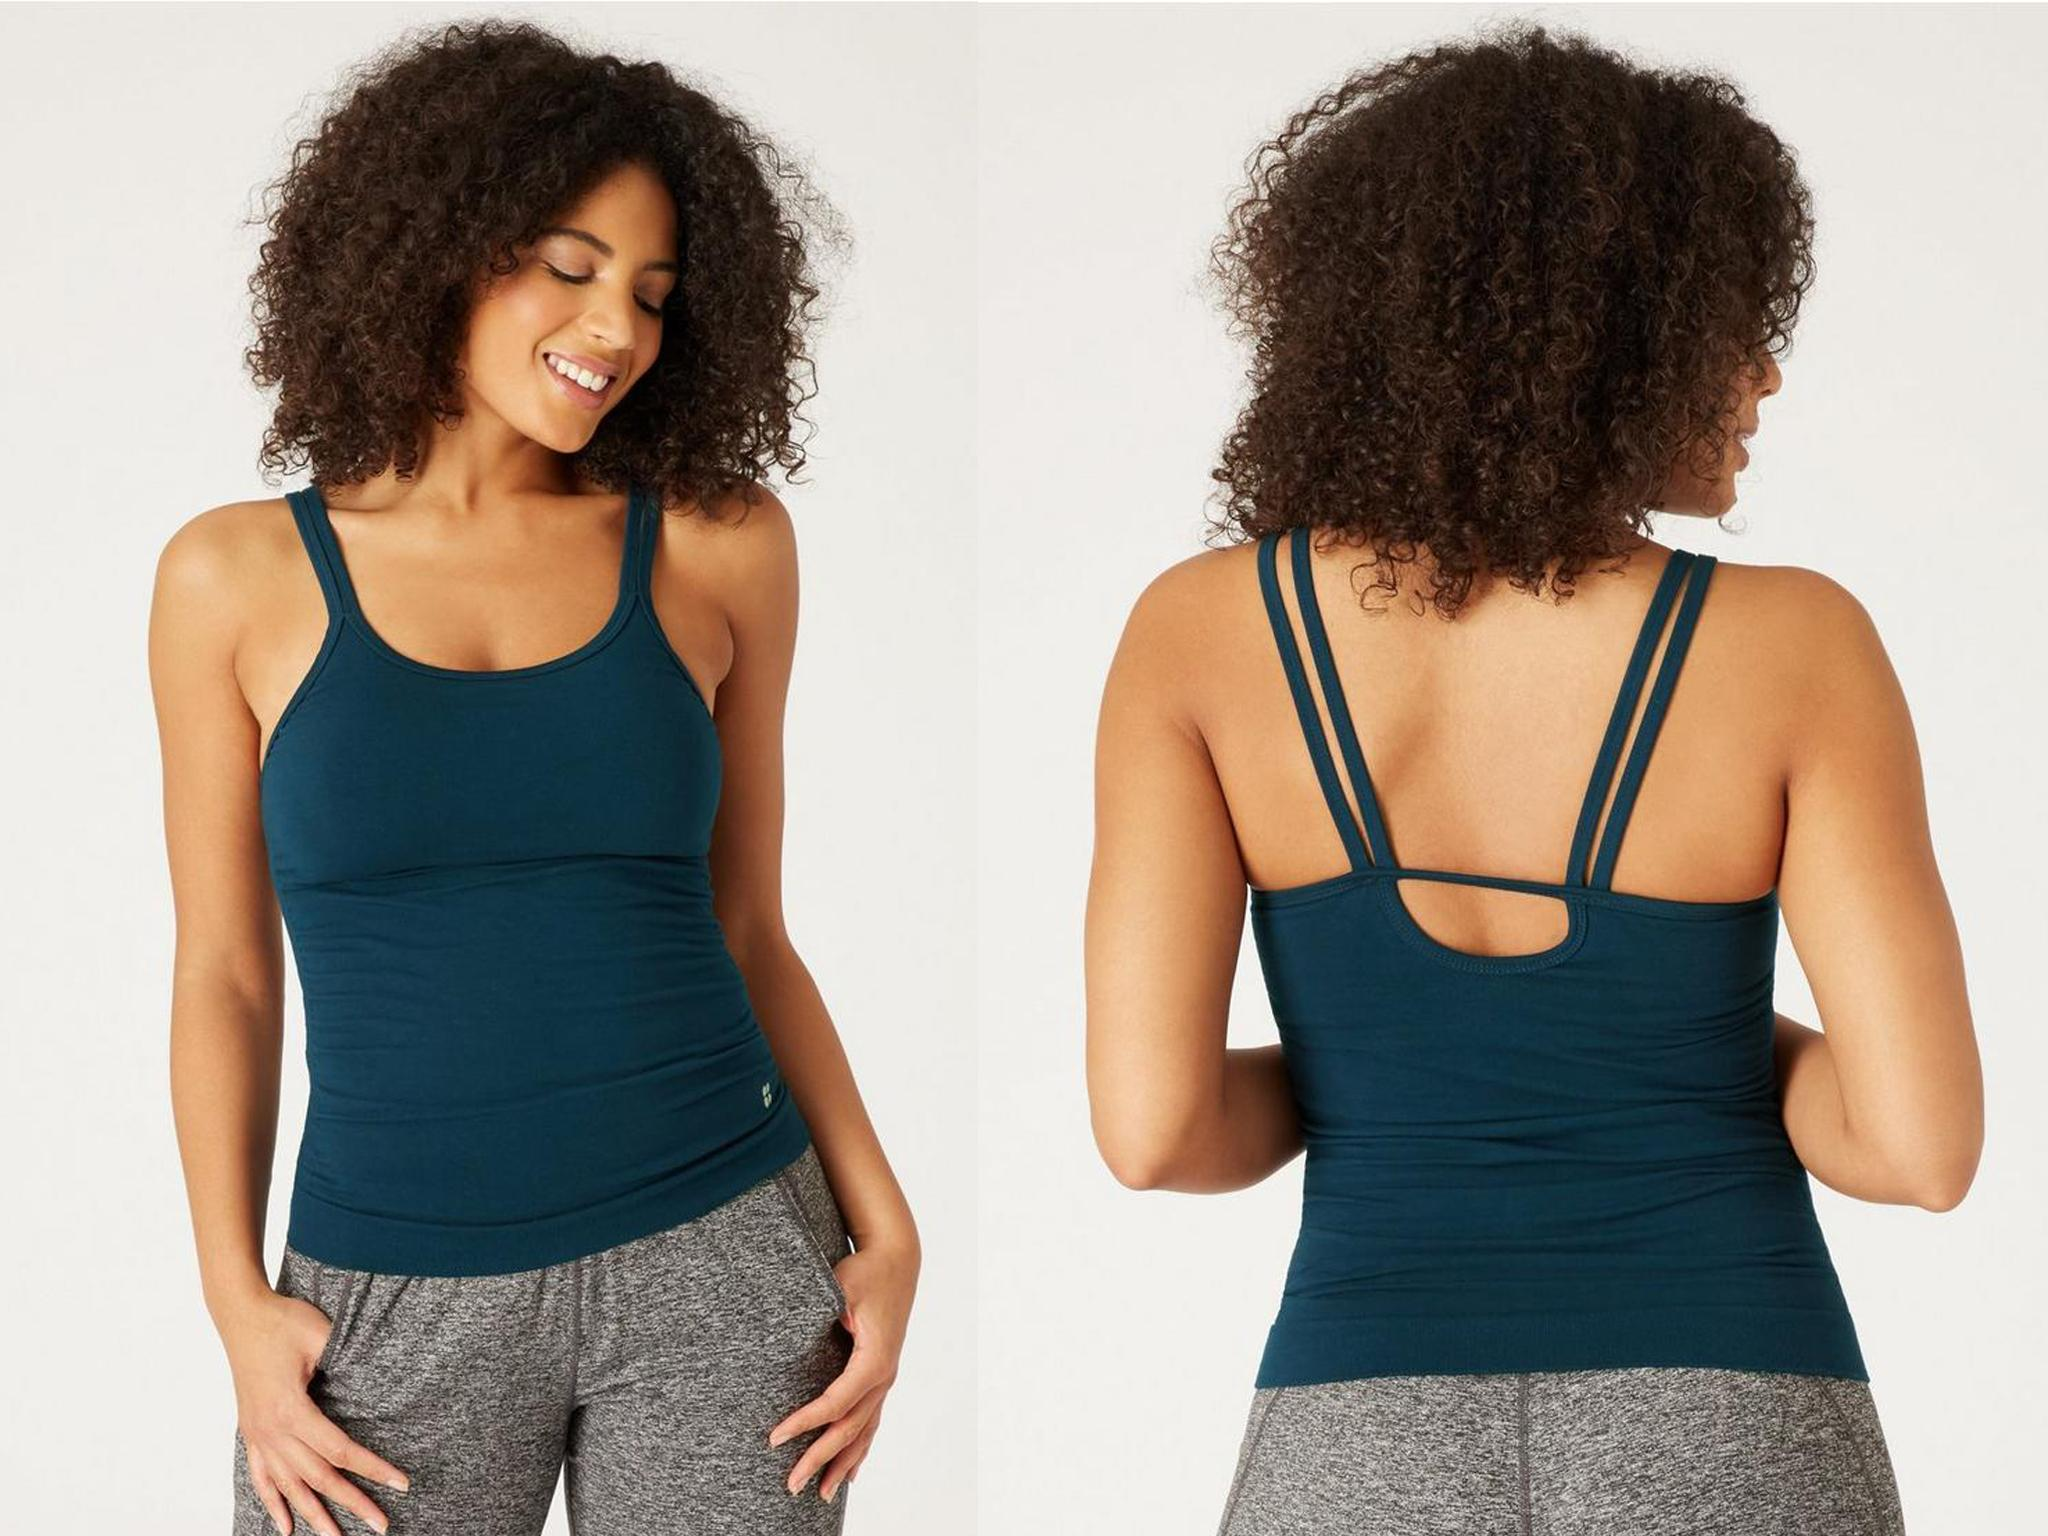 78aece8beb7 11 best women's yoga tops | The Independent